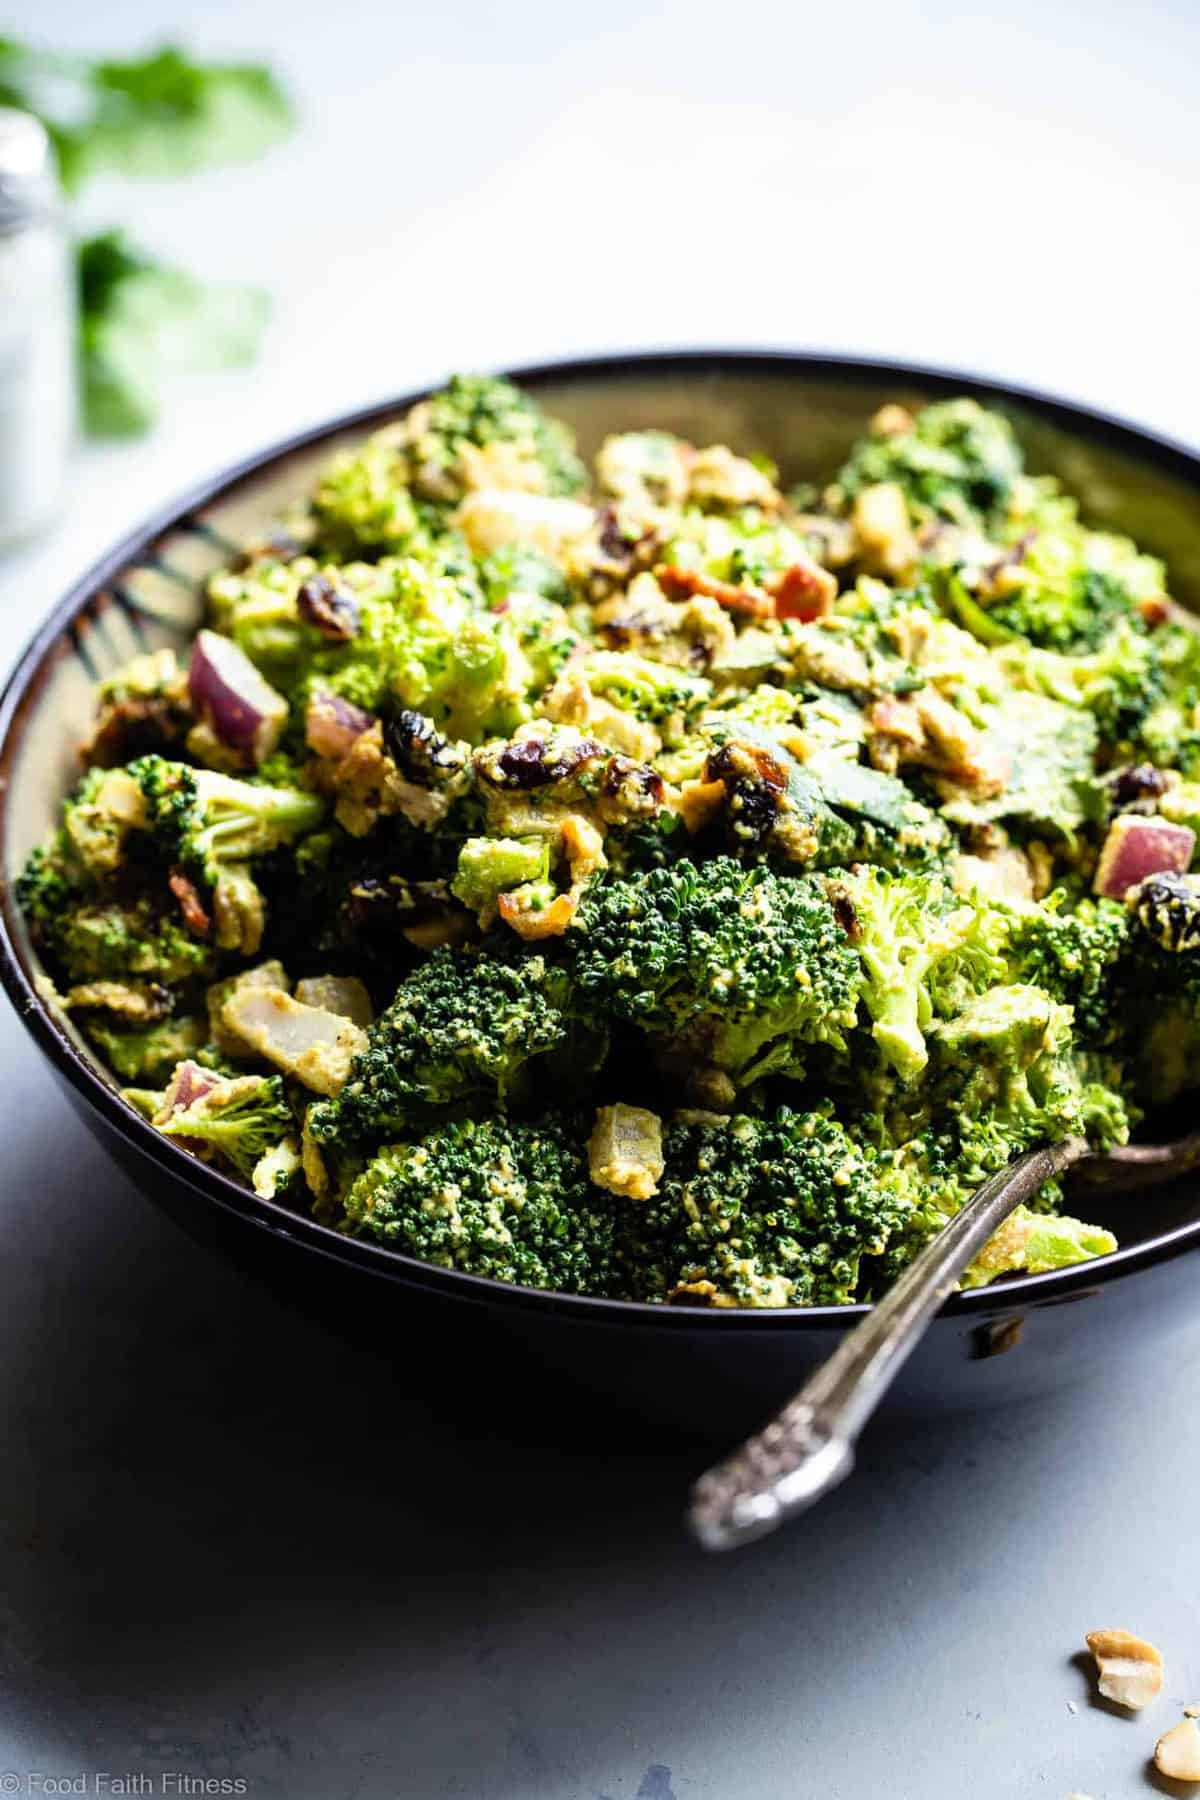 Curried Vegan Paleo Broccoli Cashew Salad -  This easy healthy broccoli salad is jazzed up with a curried cashew cream dressing. It's a quick, easy, gluten and dairy free side that's always a crowd pleaser! | #Foodfaithfitness | #Glutenfree #Paleo #Vegan #Dairyfree #Healthy